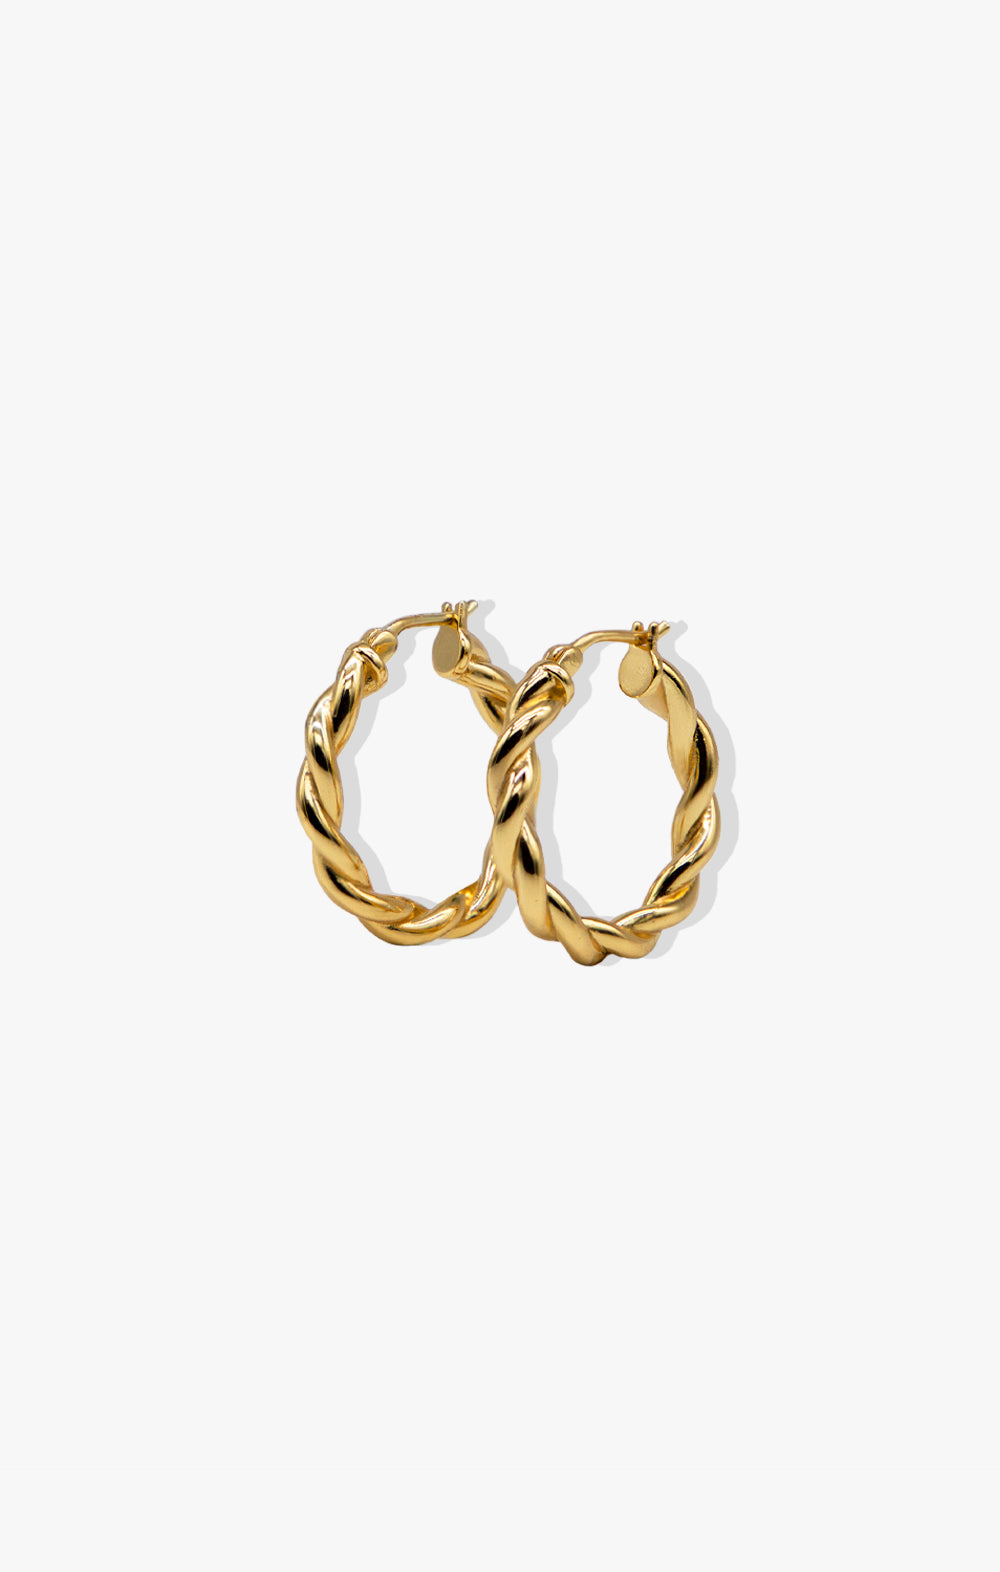 Sicily Twisted Hoop Earrings | 18k Gold Vermeil